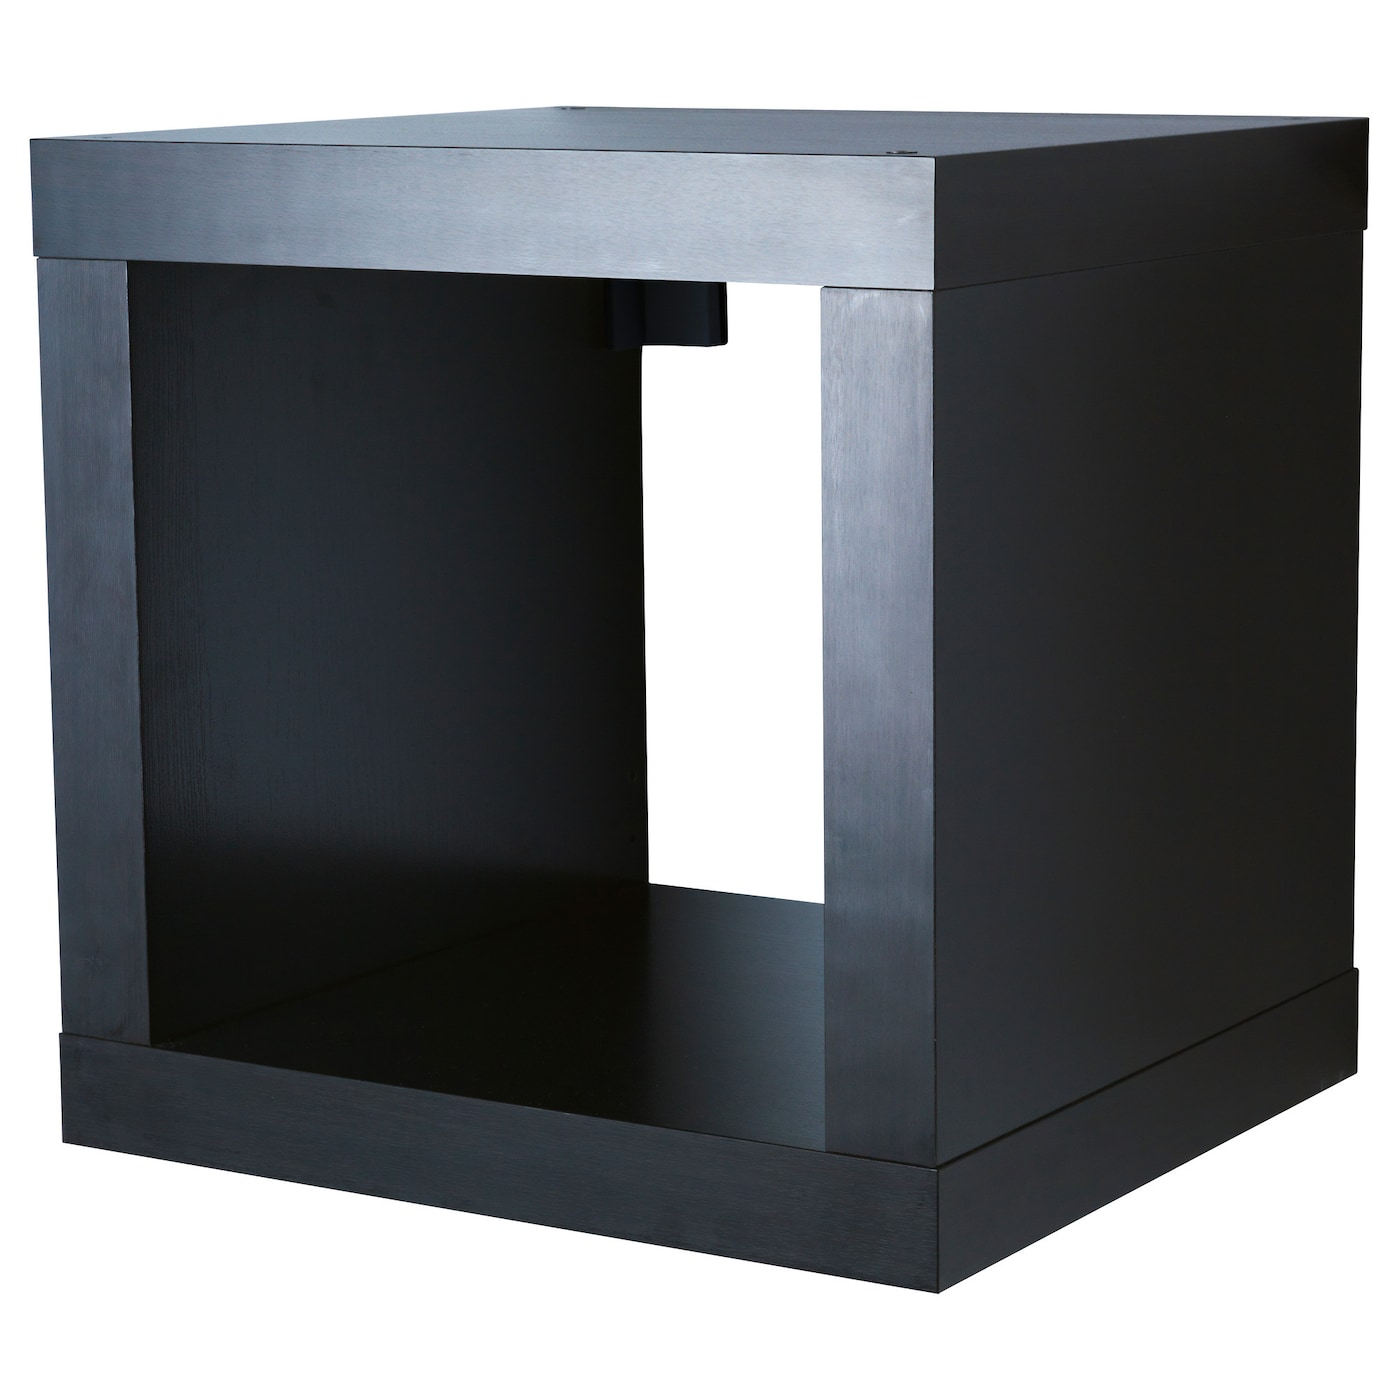 kallax shelving unit black brown 42x42 cm ikea. Black Bedroom Furniture Sets. Home Design Ideas